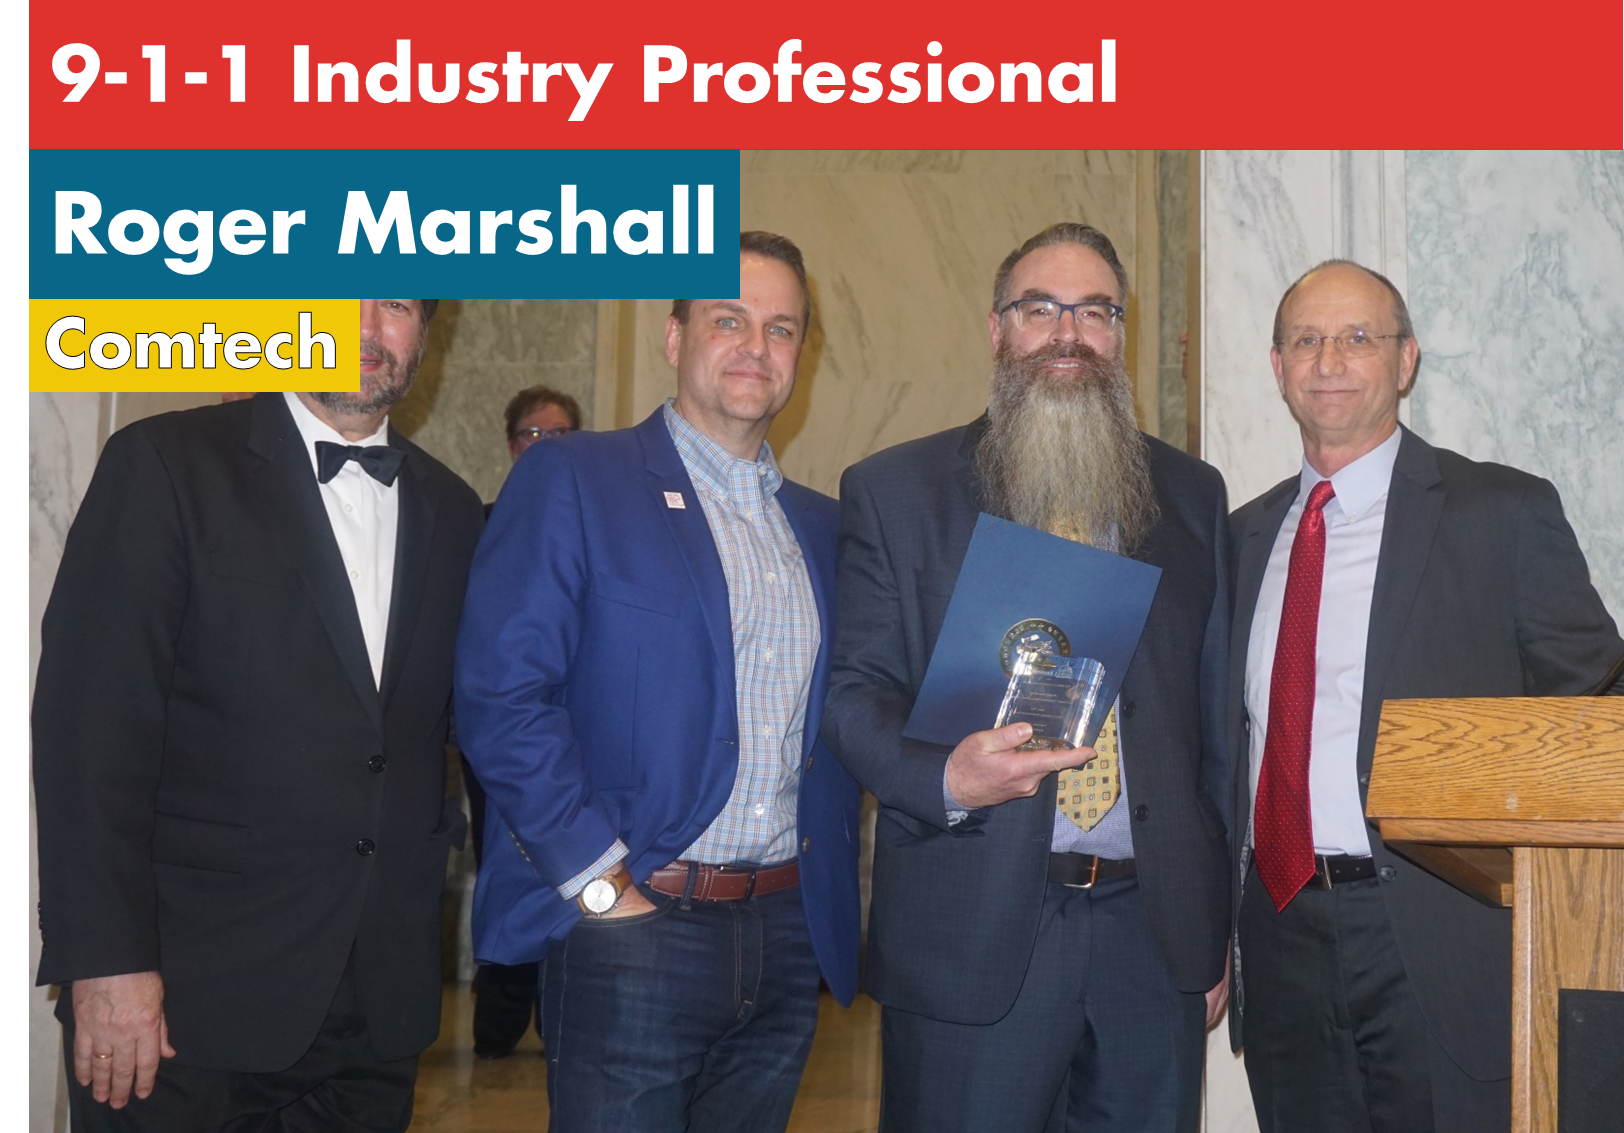 Award Winner - Roger Marshall